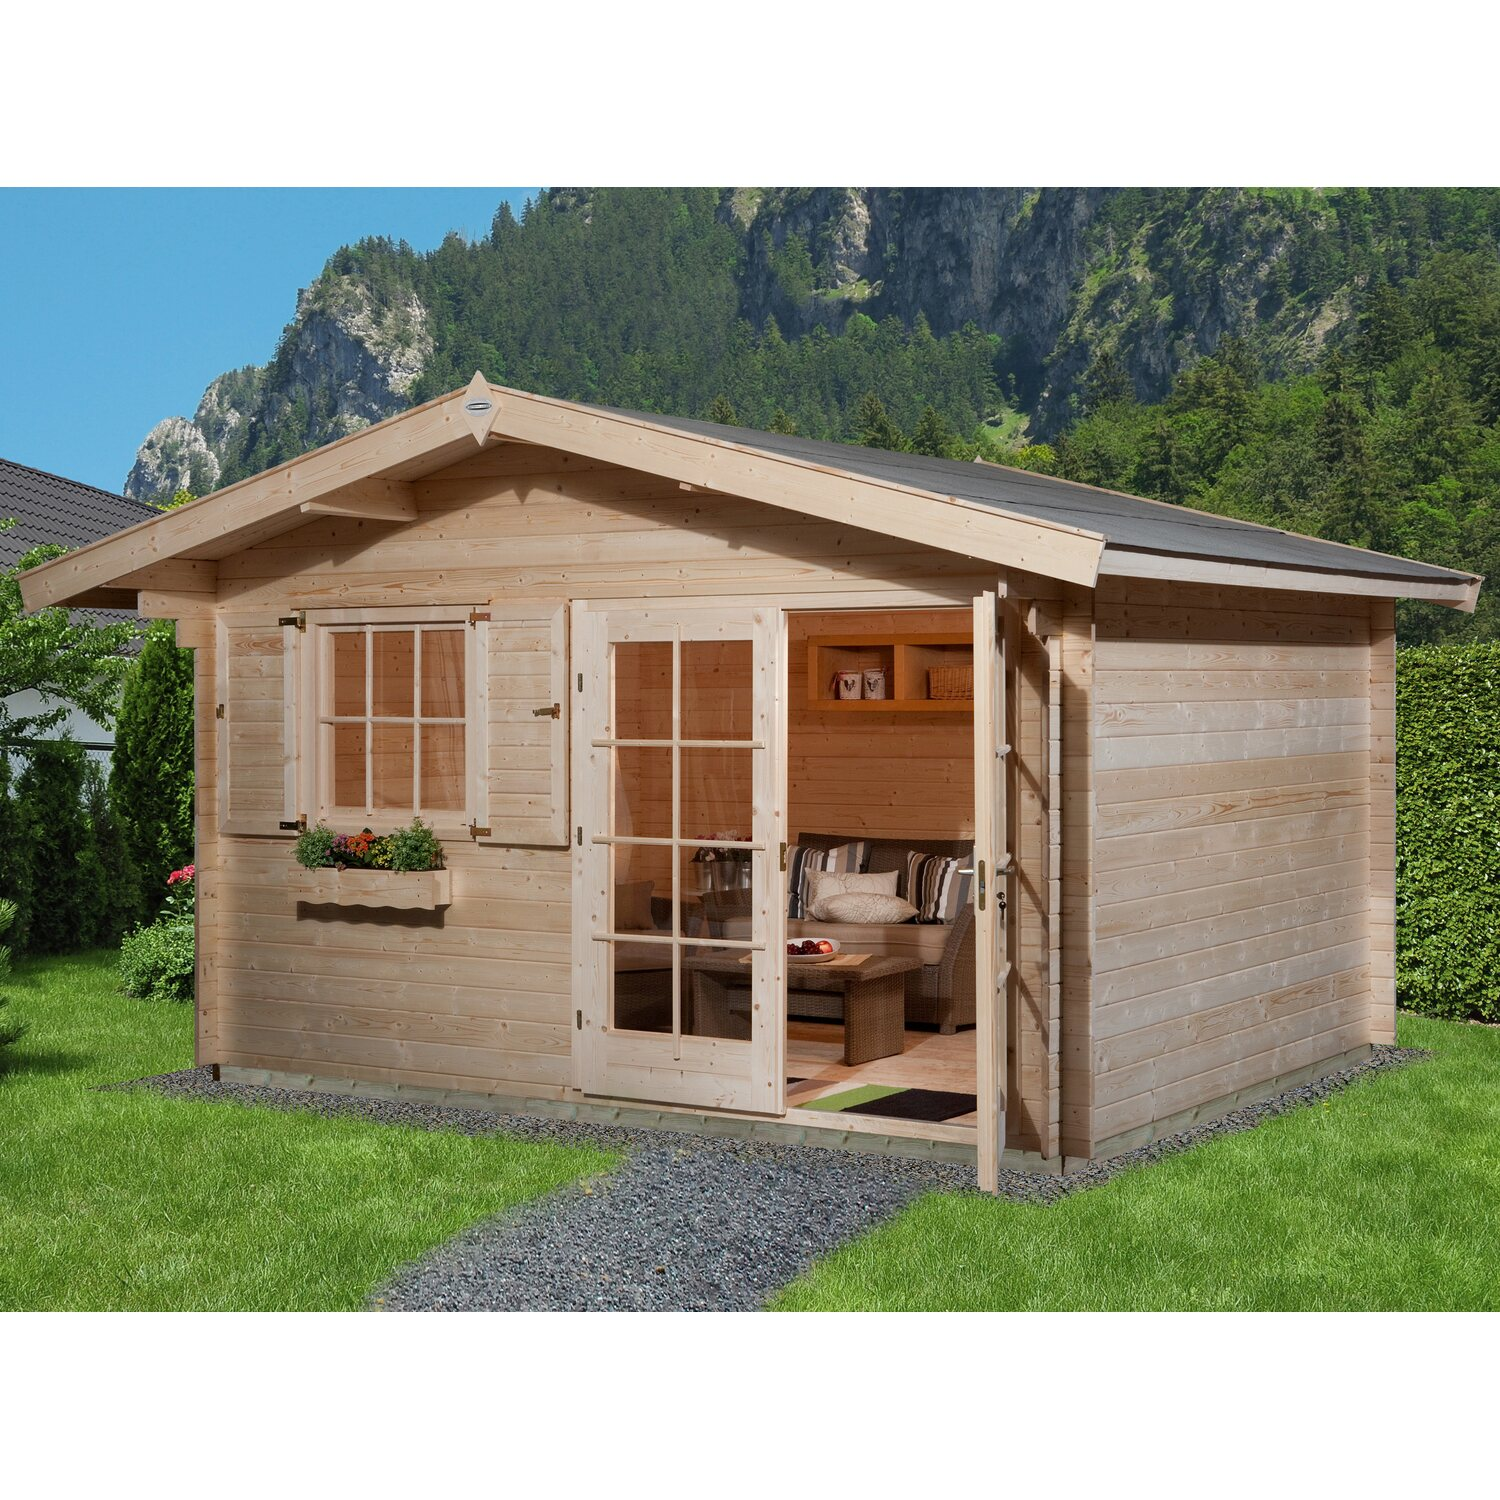 obi holz gartenhaus panorama b 380 cm x 380 cm mit vordach 60 cm kaufen bei obi. Black Bedroom Furniture Sets. Home Design Ideas